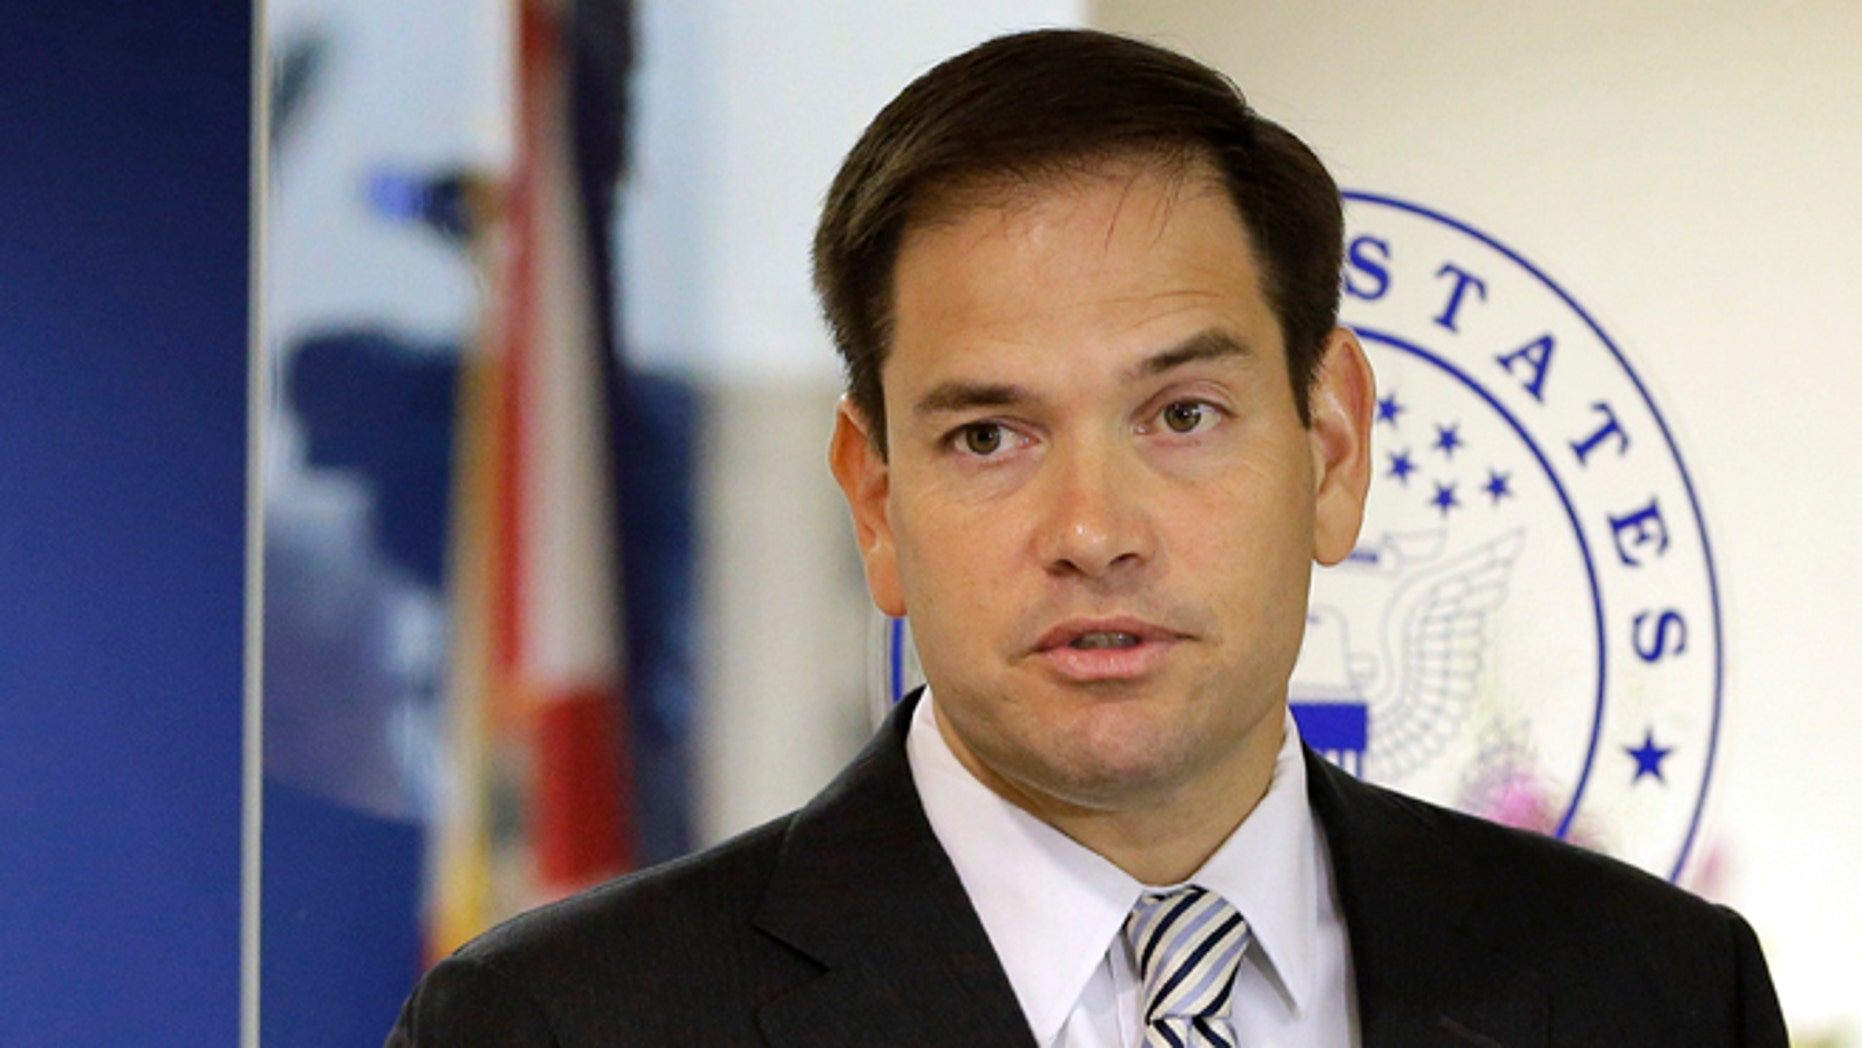 U.S. Sen. Marco Rubio, R-Fla., during news conference, Friday, June 3, 2016, in Doral, Fla.